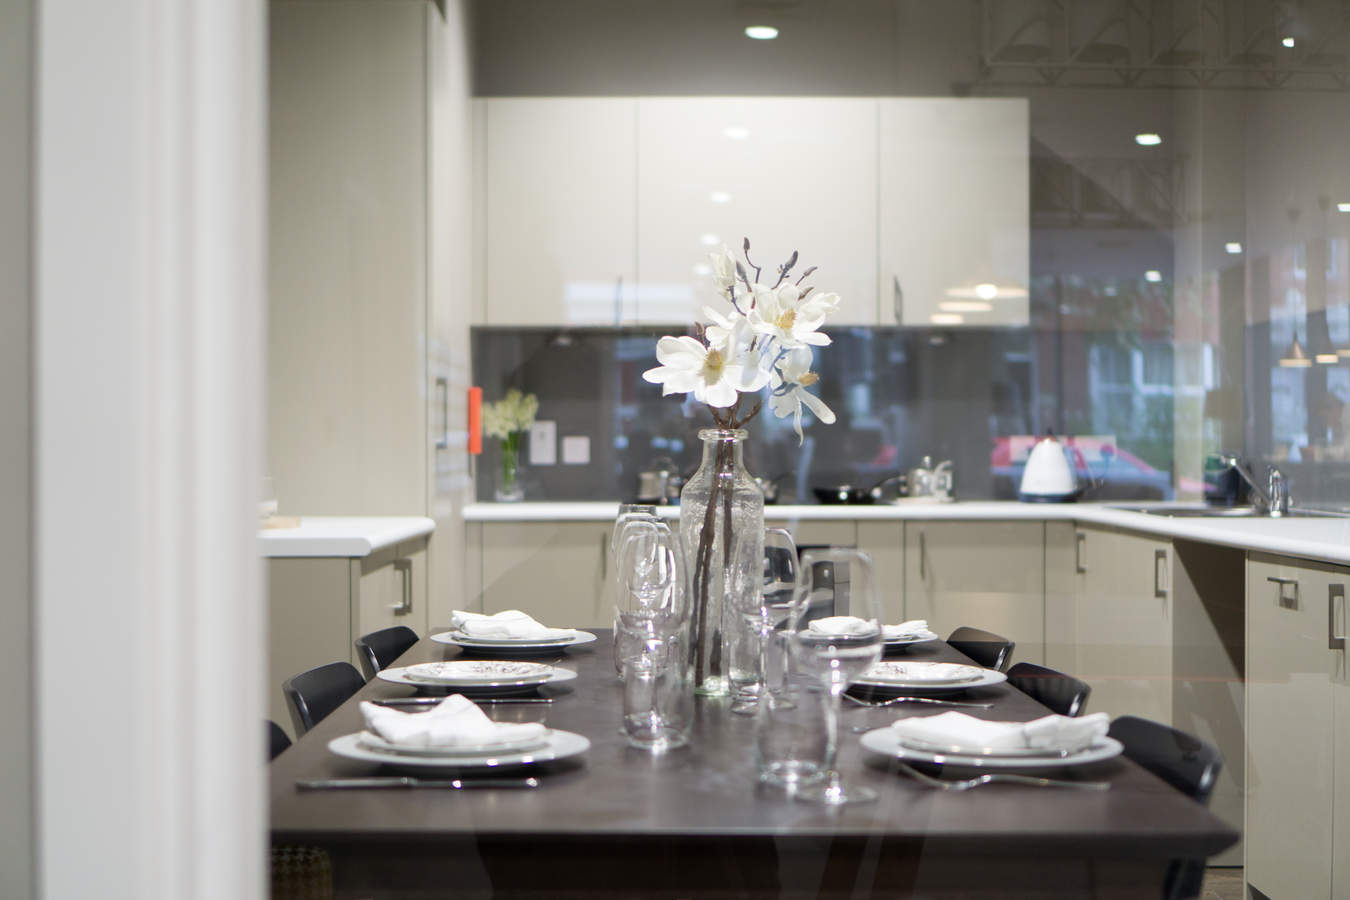 9.residents_private_dining